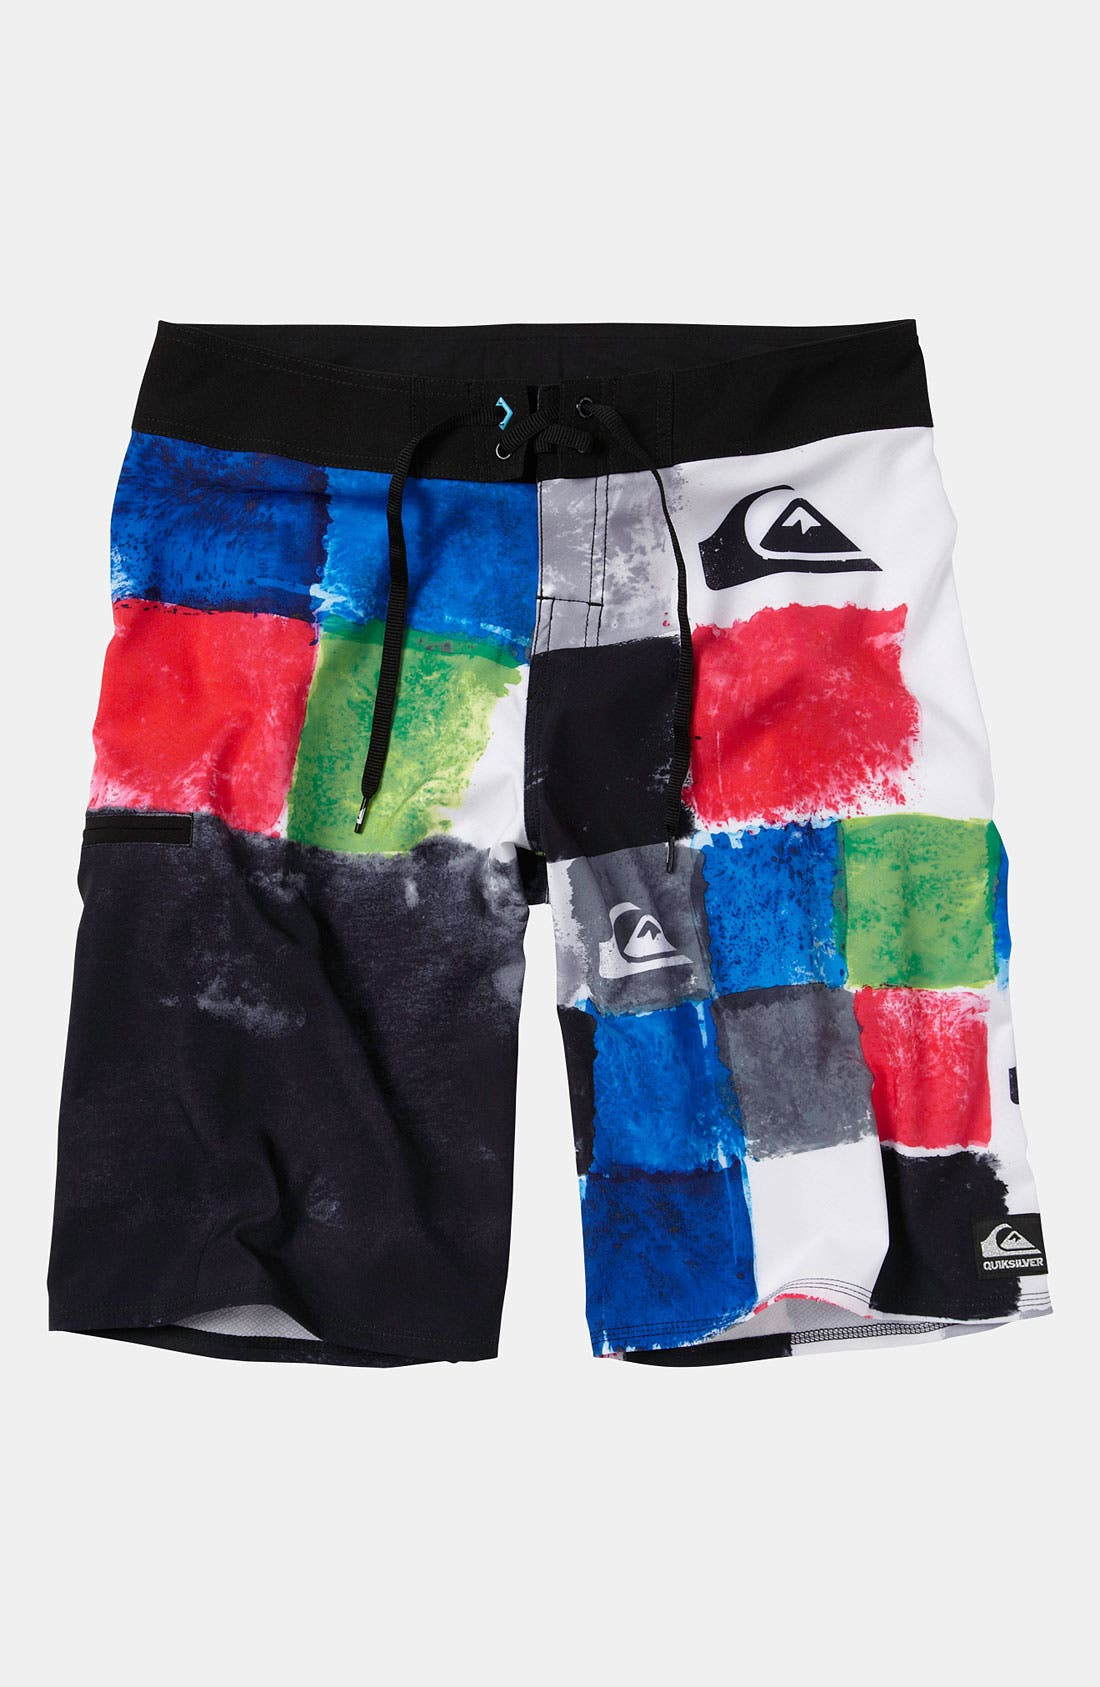 Alternate Image 1 Selected - Quiksilver 'Plasma' Board Shorts (Big Boys)